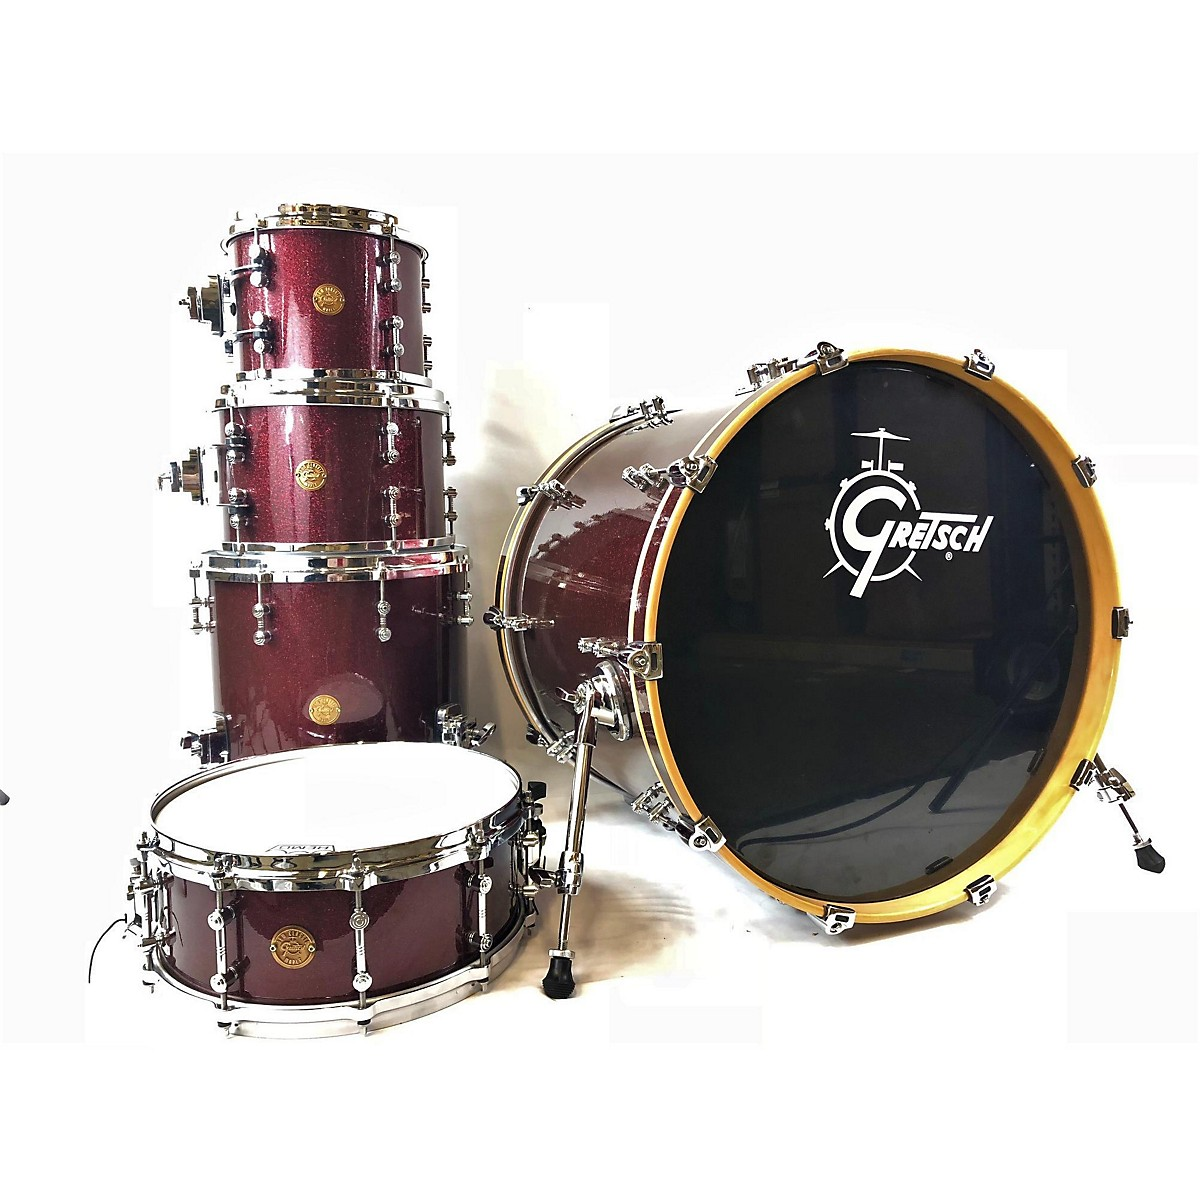 Gretsch Drums New Classic Euro Drum Kit